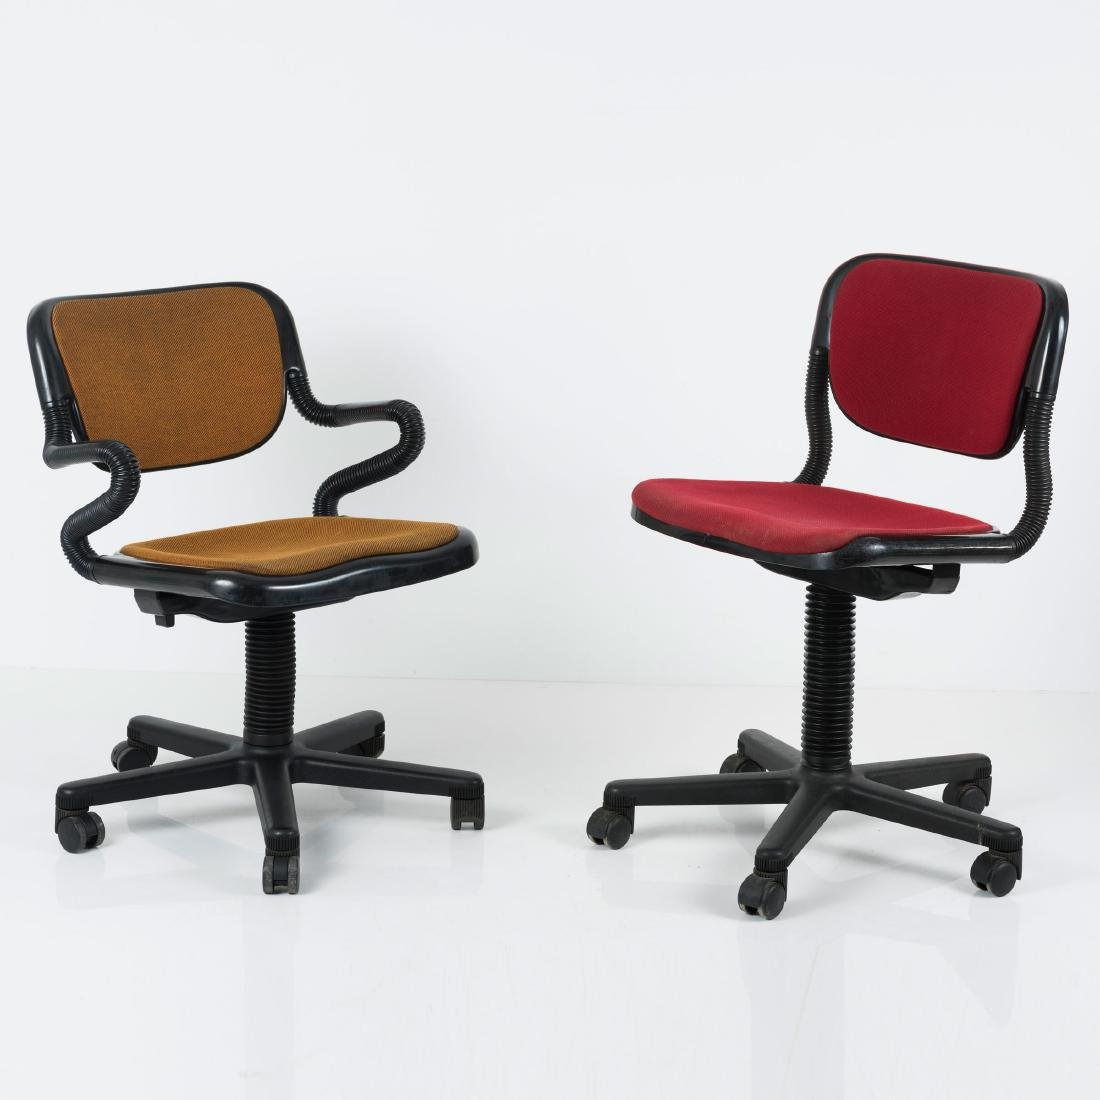 Two 'Vertebra' desk chairs, 1976 - 2